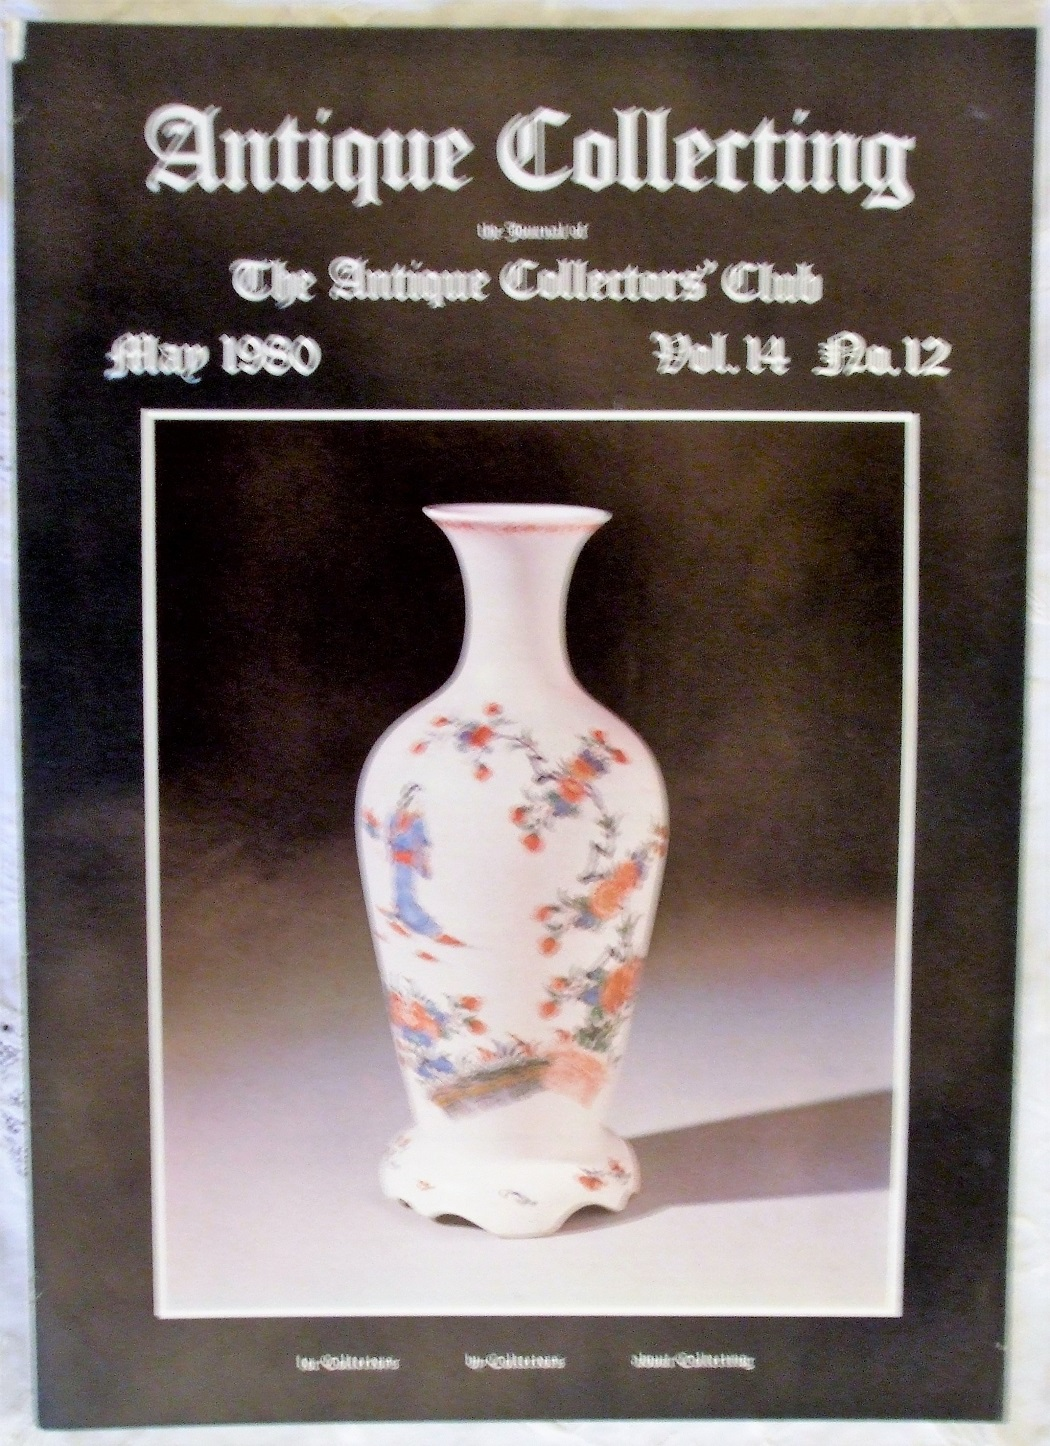 Antique Collecting May 1980